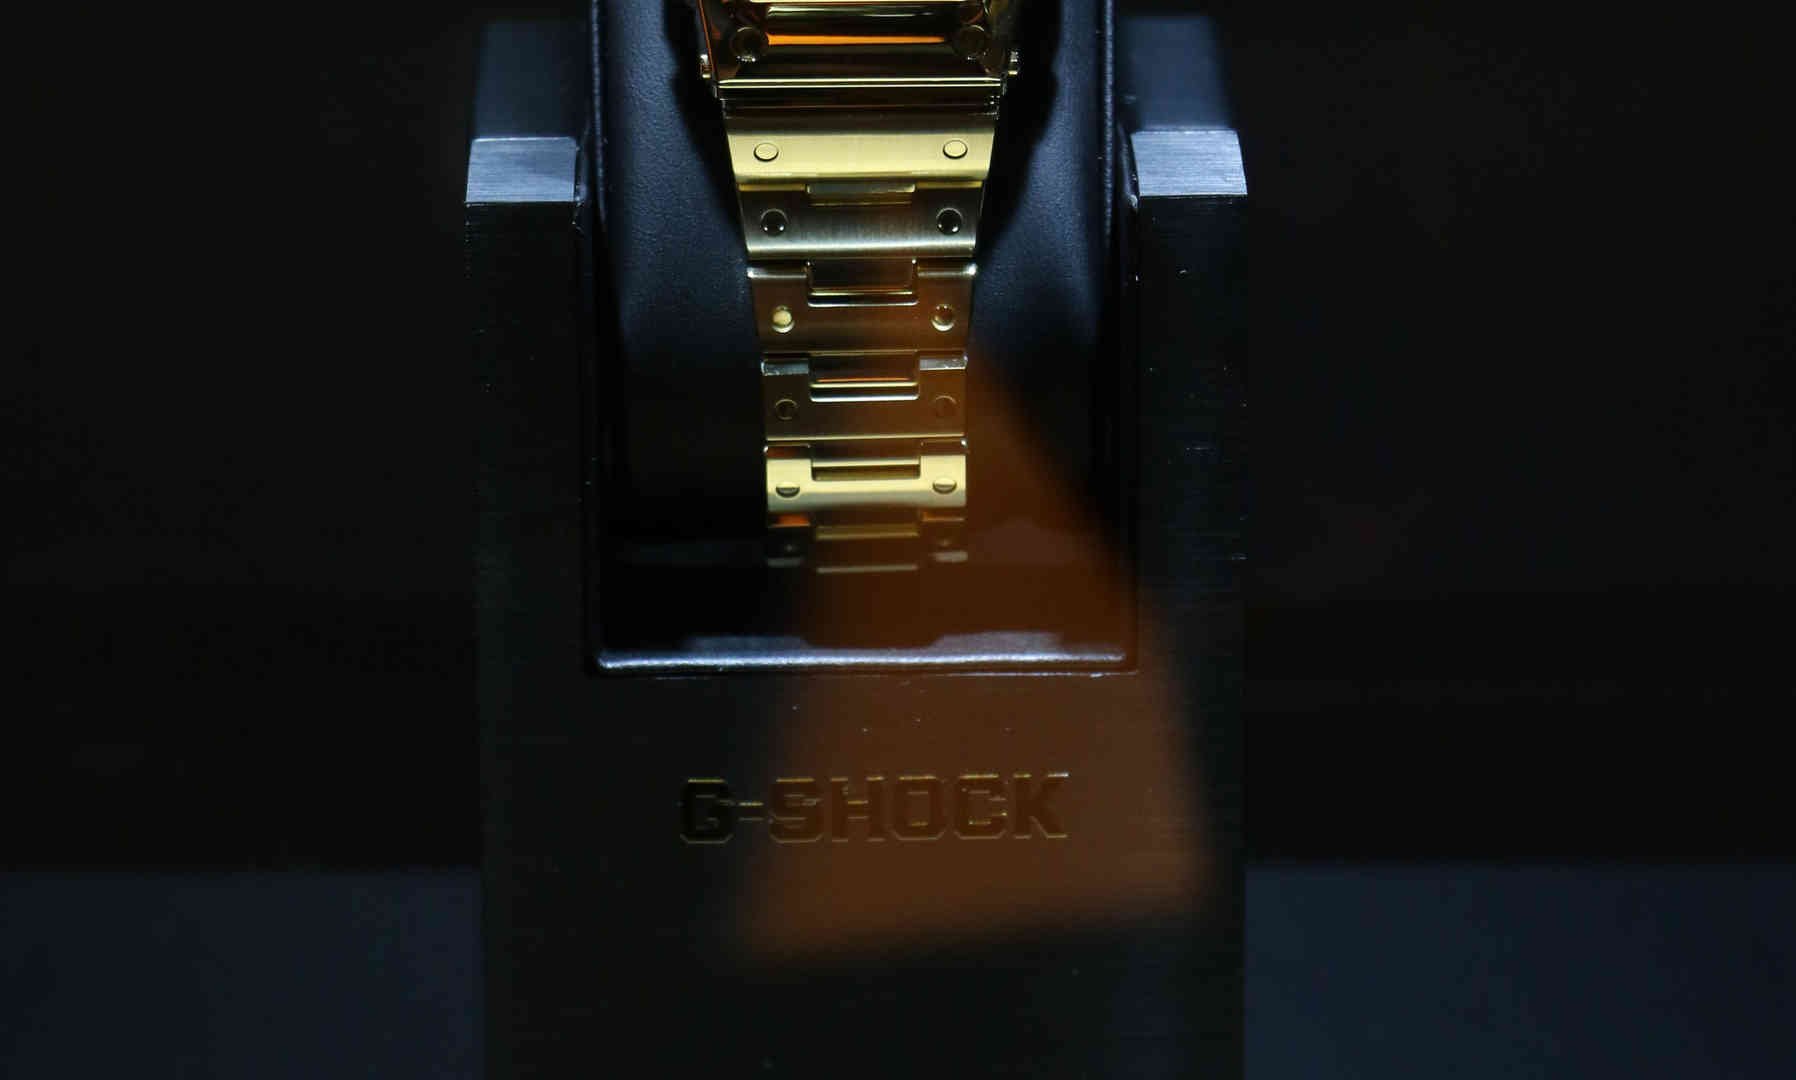 G-Shock 2015 Pure Gold Edition